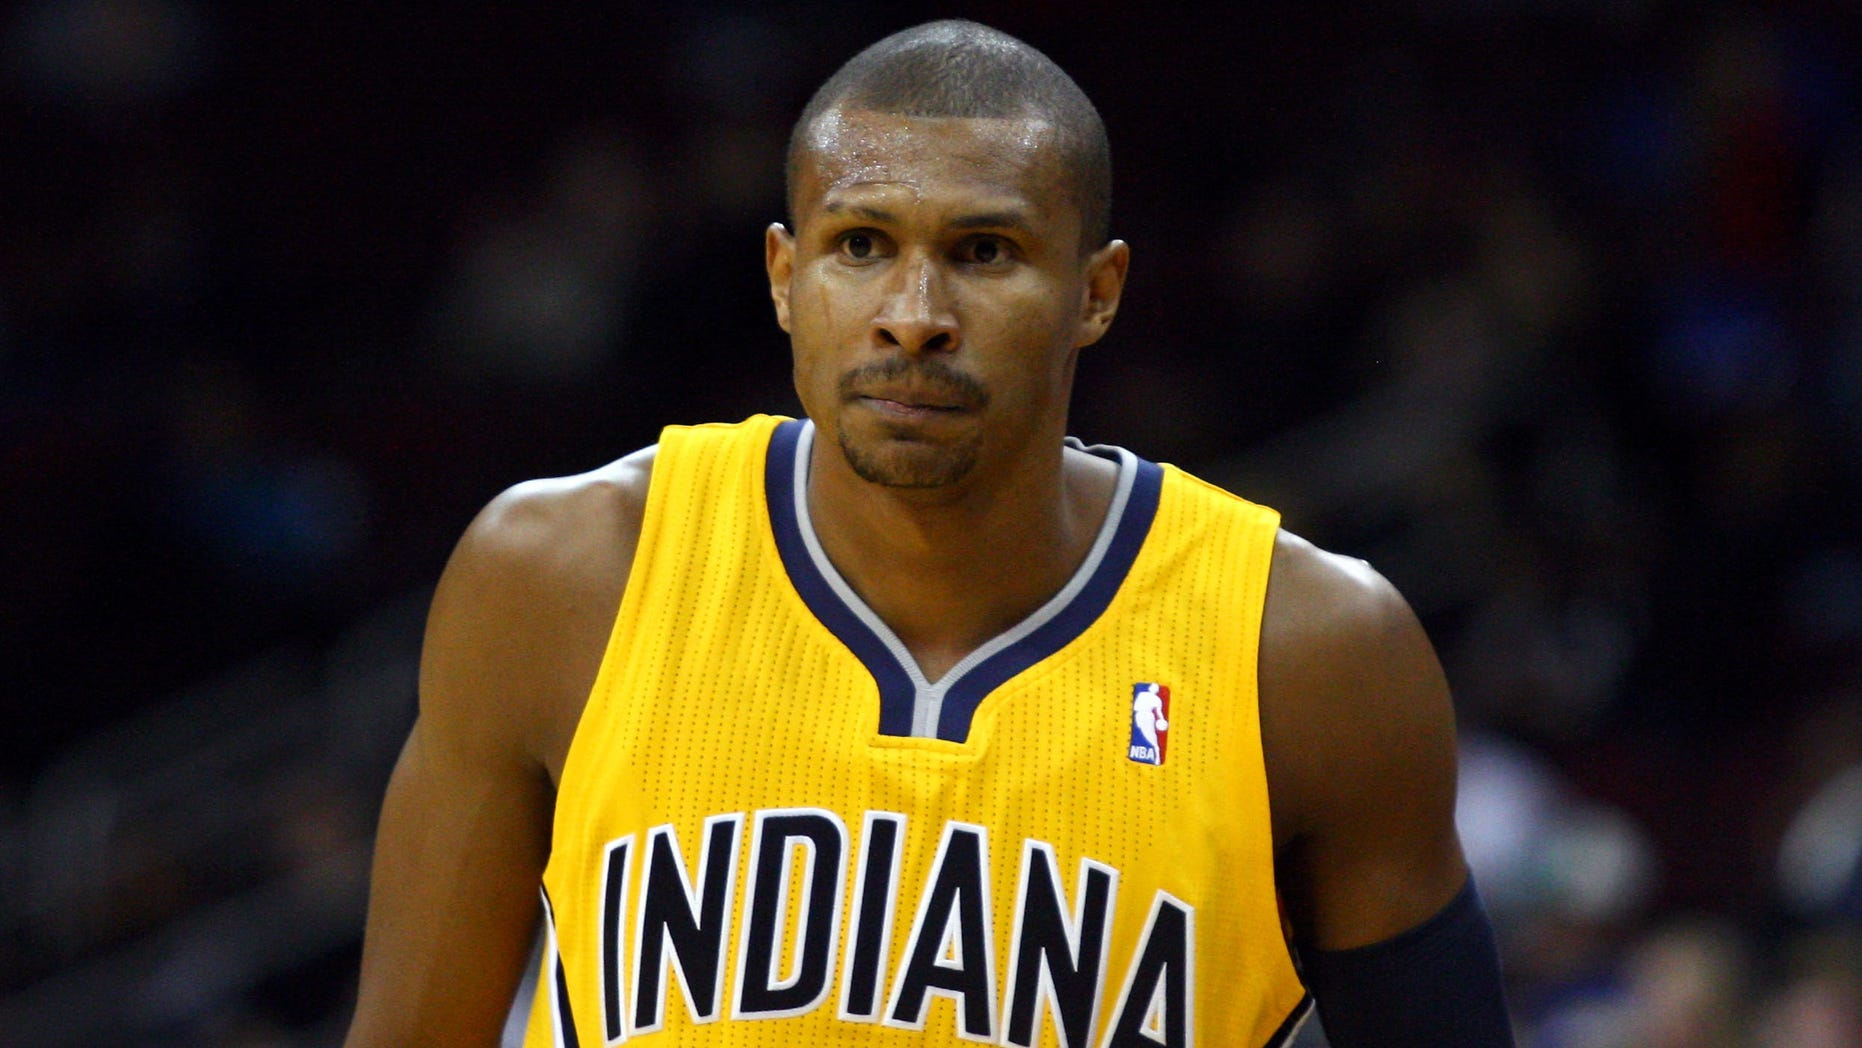 Leandro Barbosa #28 of the Indiana Pacers (Photo by Chris Chambers/Getty Images)